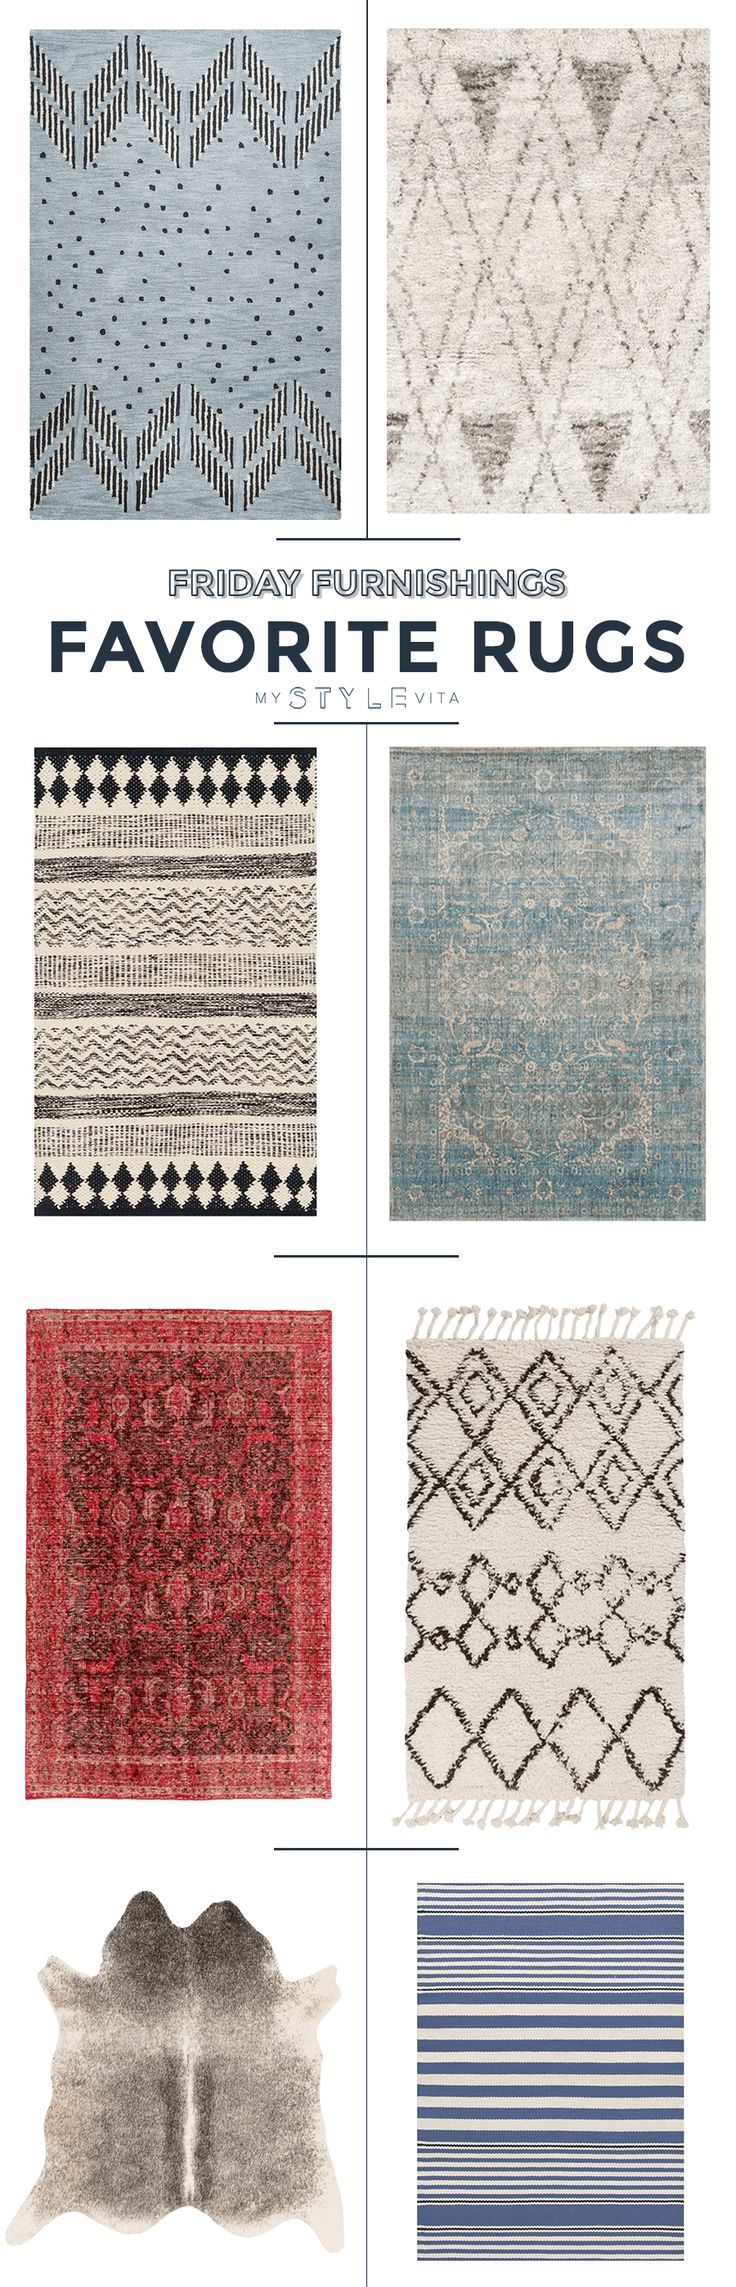 affordable rugs from the Nordstrom Anniversary Sale